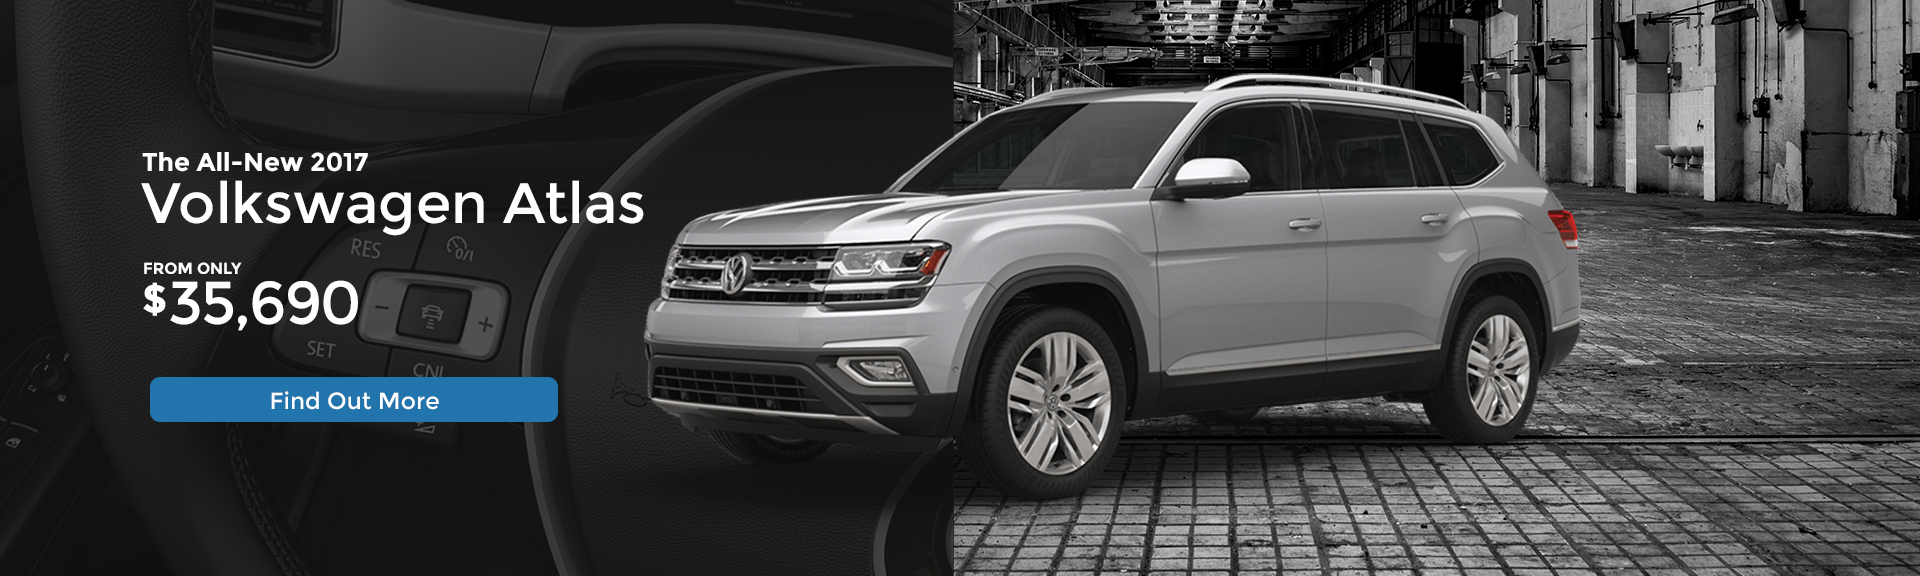 The All New Volkswagen Atlas